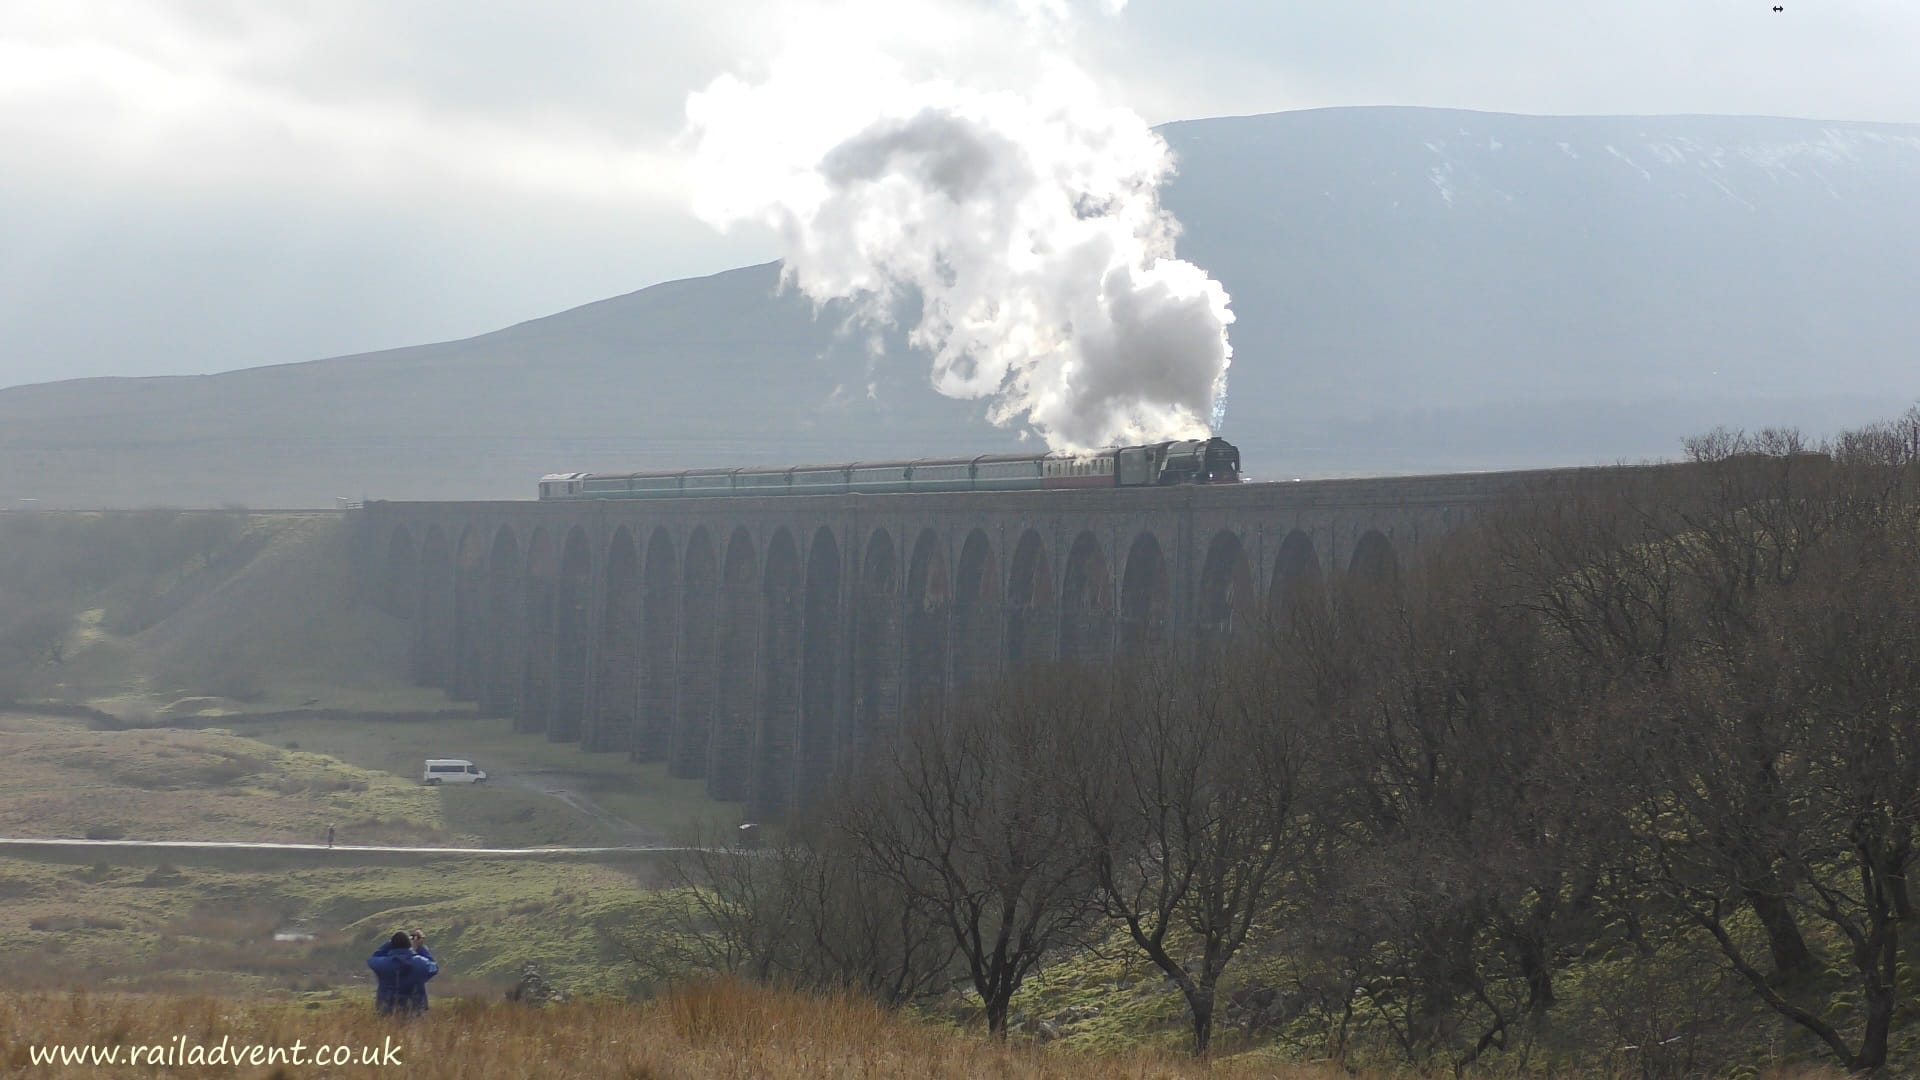 No. 60163 Tornado steams over Ribblehead Viaduct on the Settle and Carlisle Railway